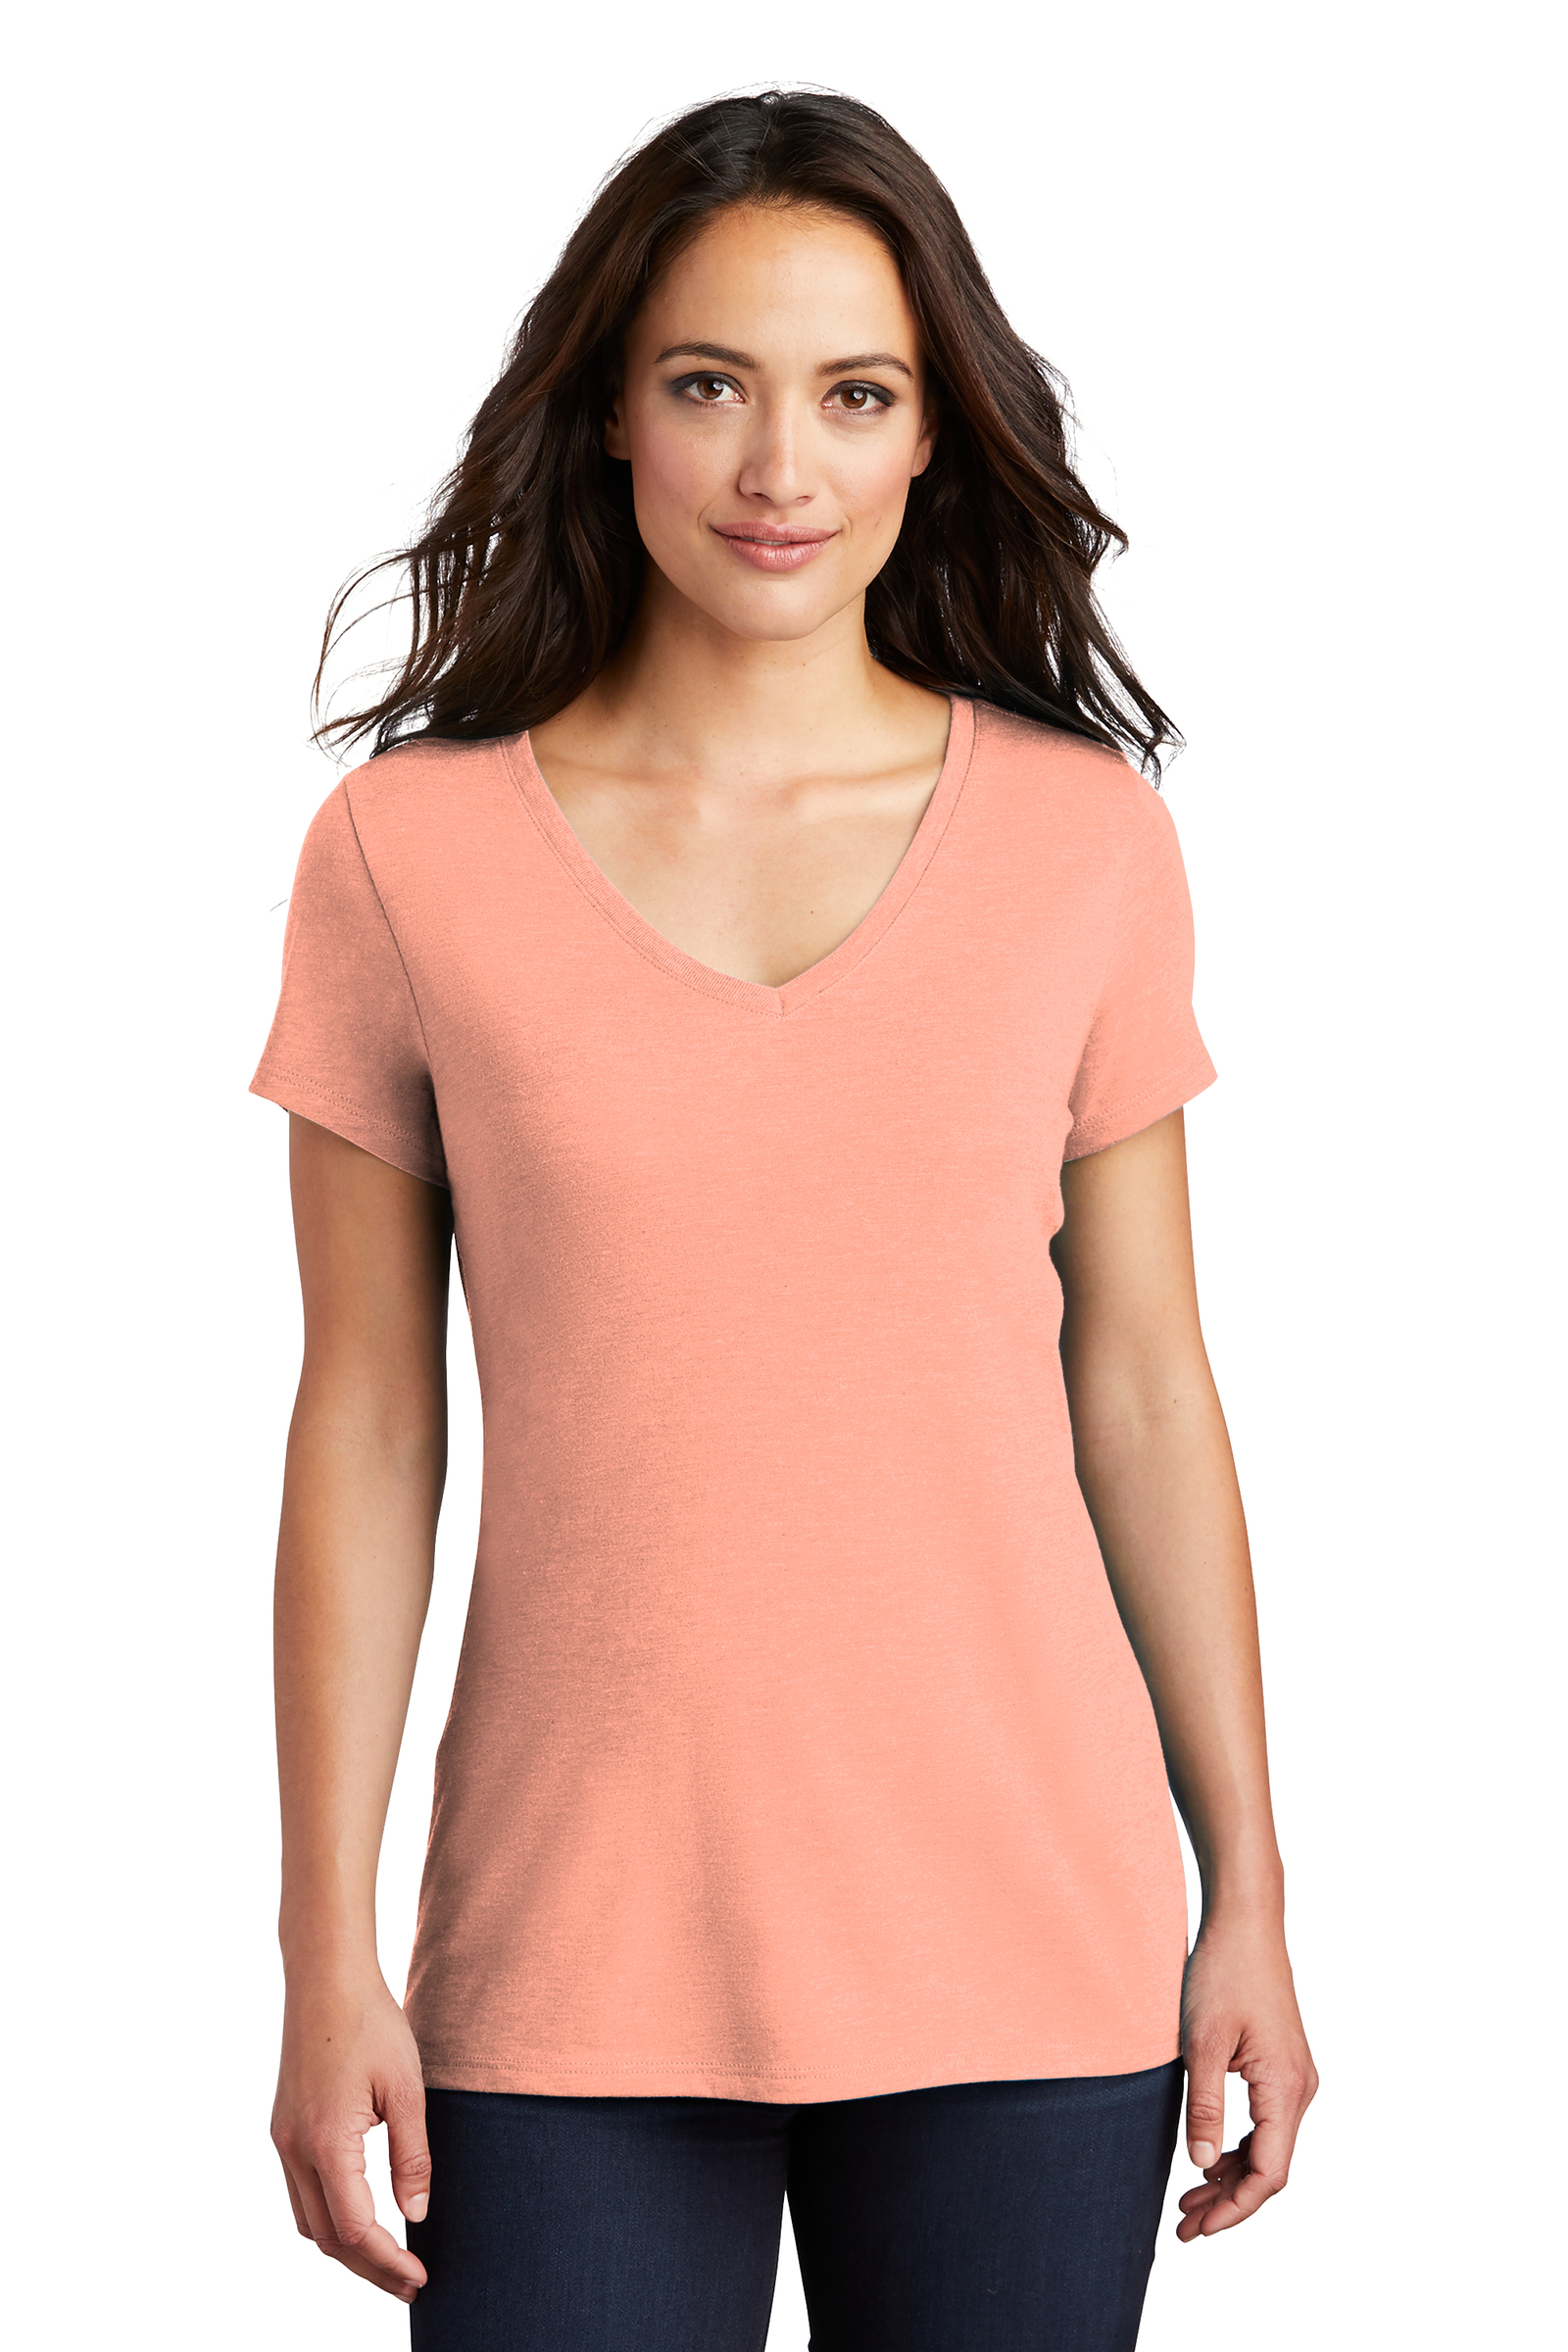 District Embroidered Women's Perfect Tri V-Neck Tee